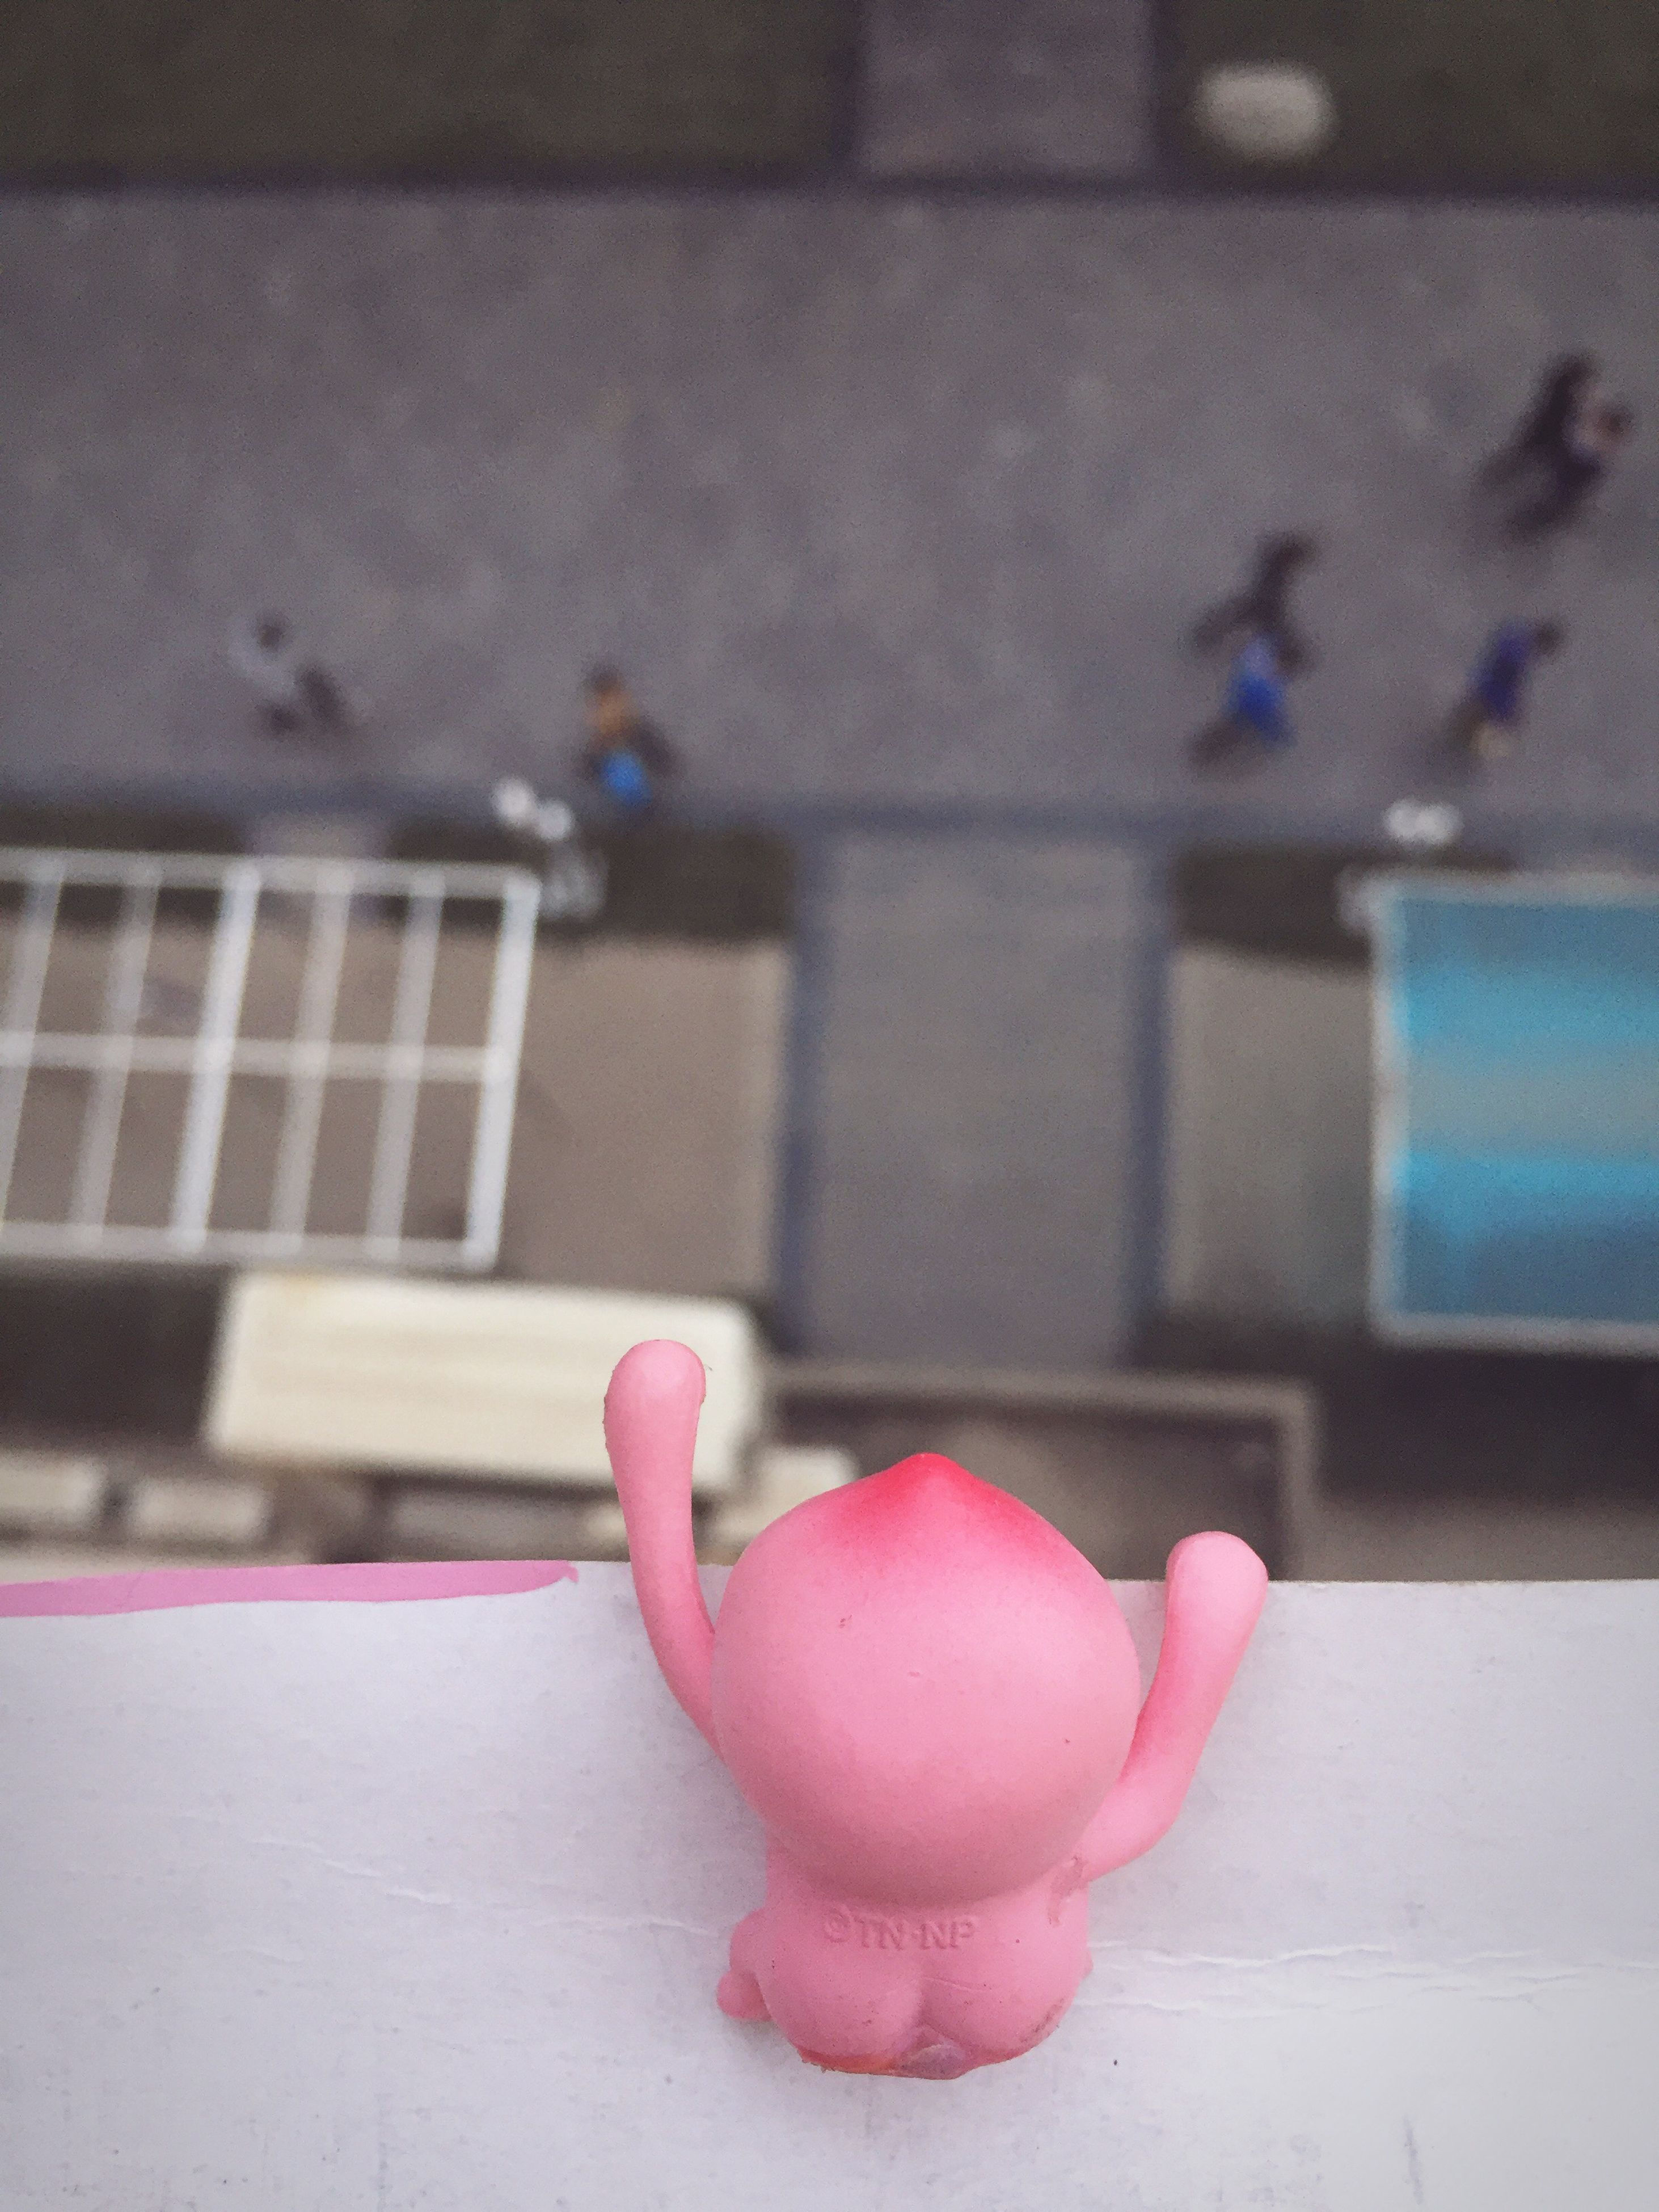 indoors, pink color, person, close-up, part of, focus on foreground, cropped, selective focus, unrecognizable person, built structure, wall - building feature, red, architecture, human finger, day, flooring, table